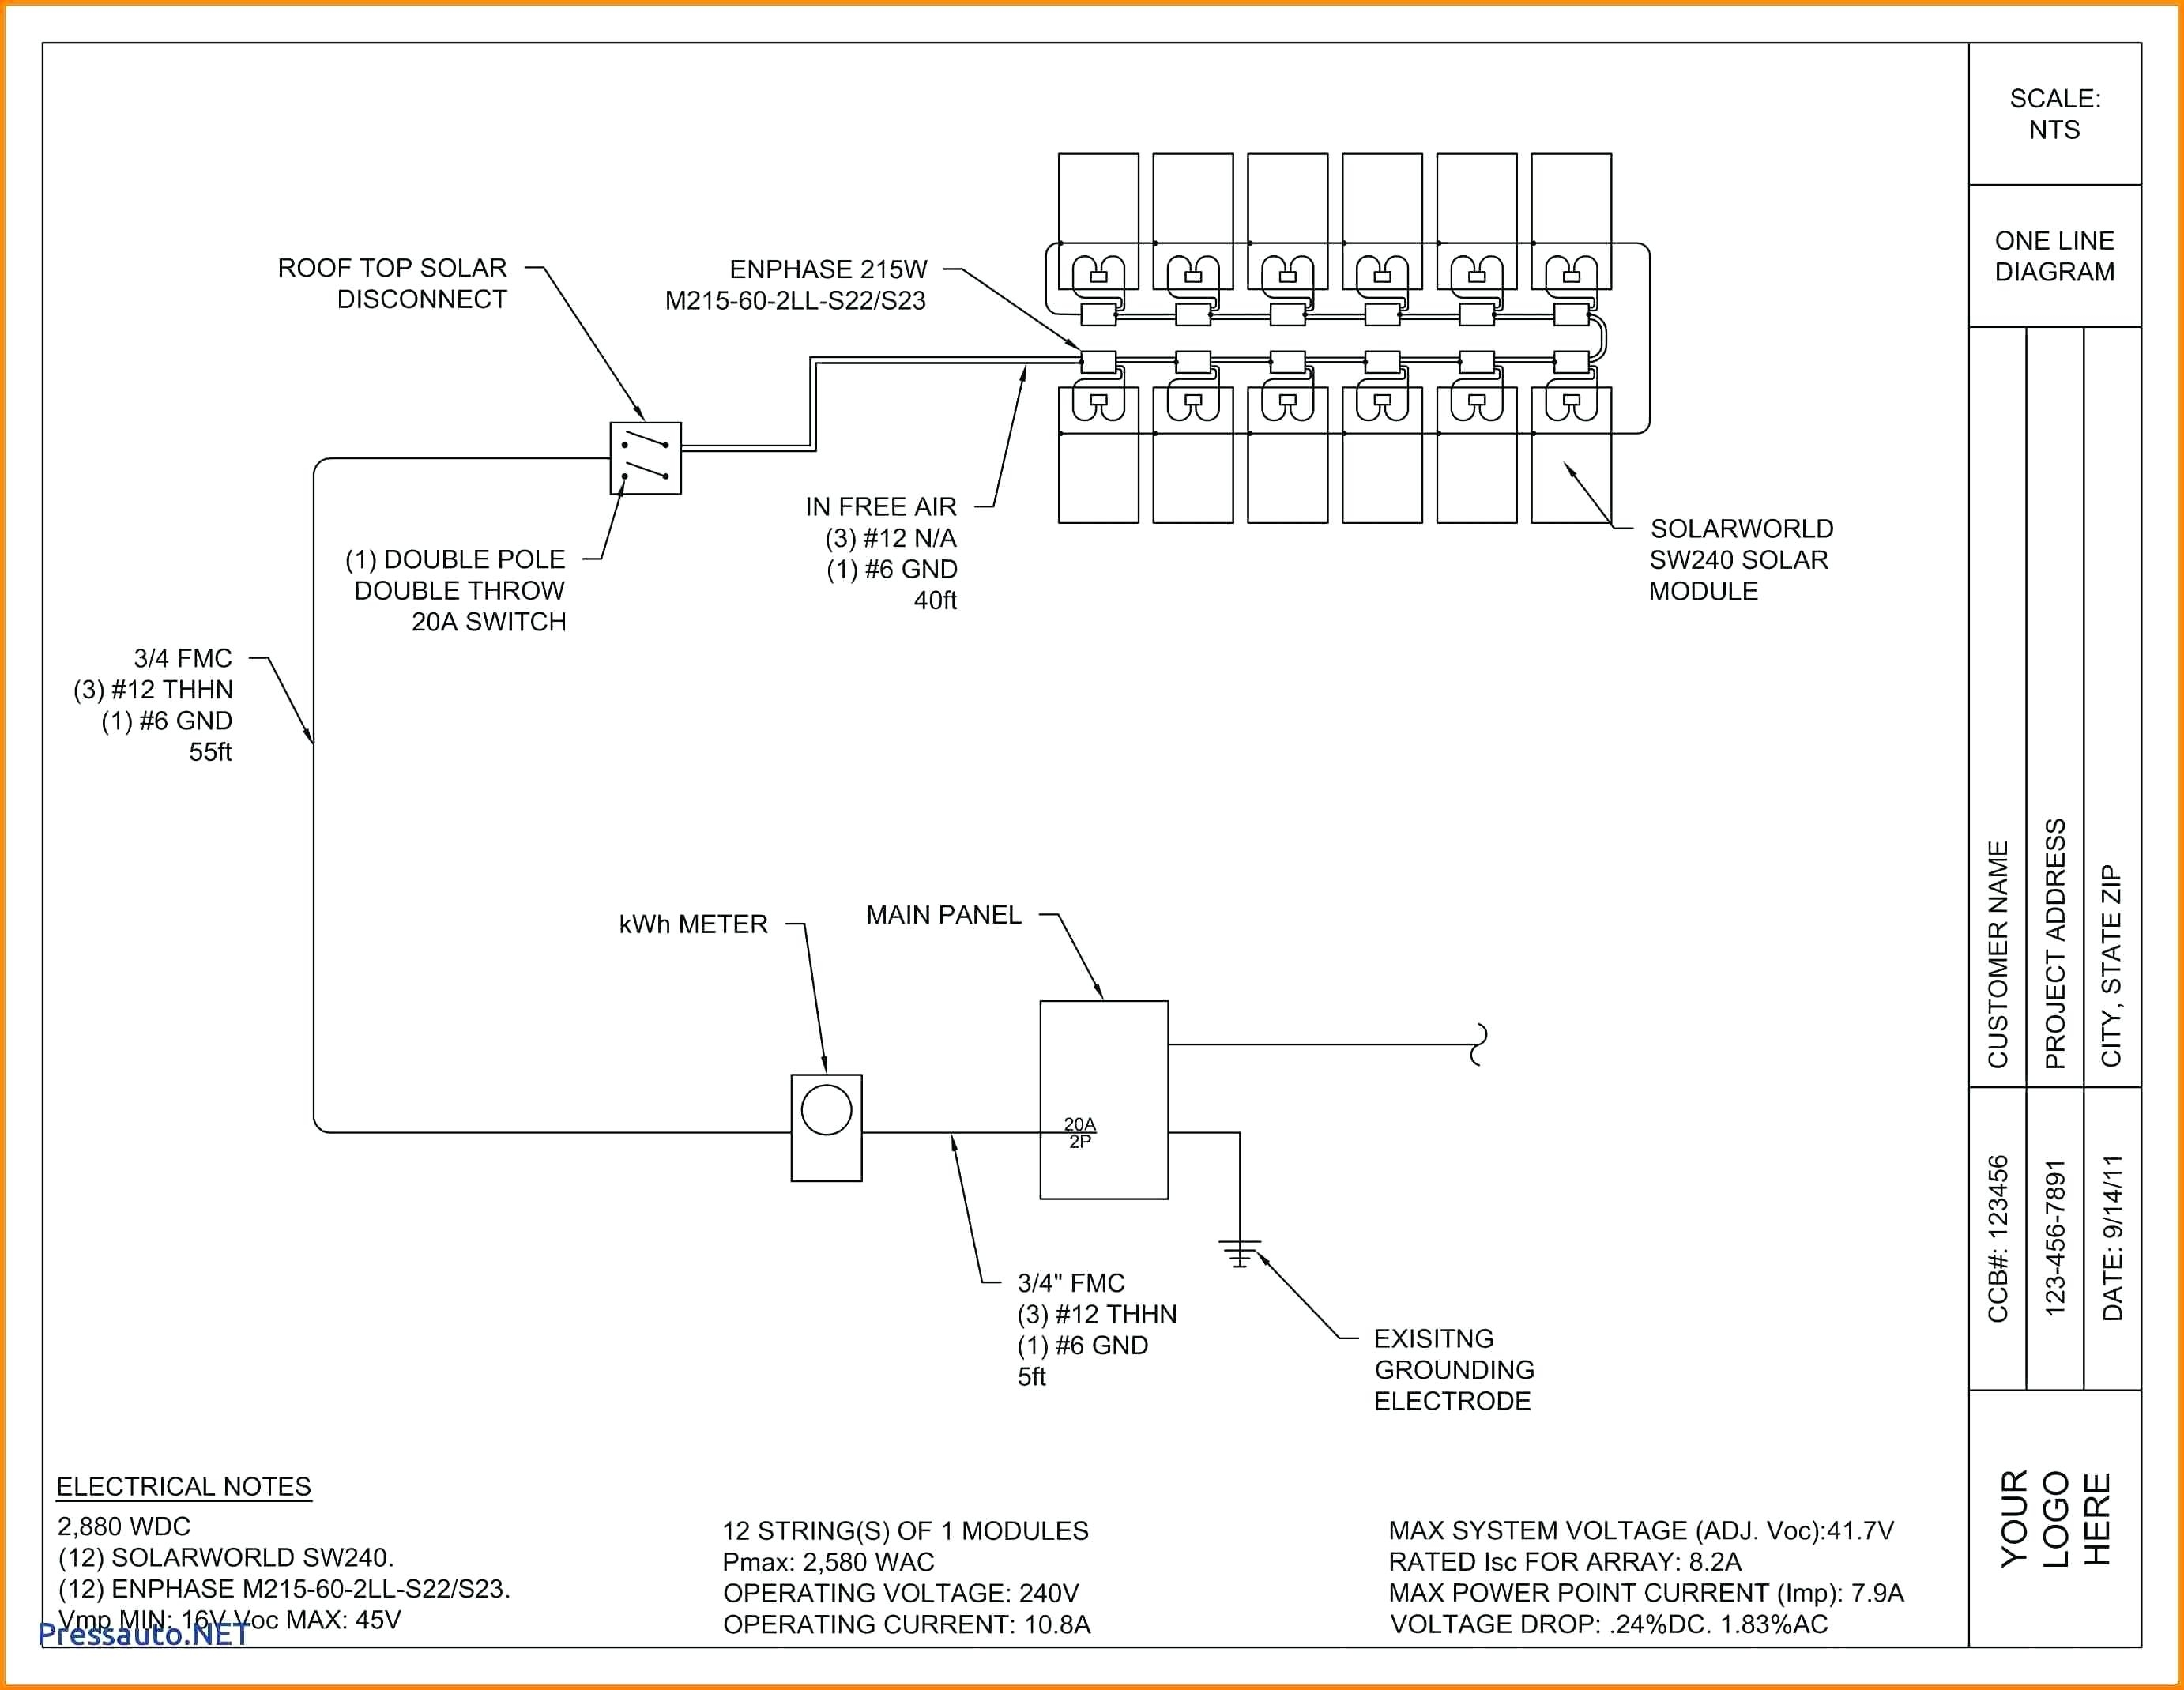 honeywell home thermostat wiring diagram honeywell round thermostat wiring diagram | free wiring ... honeywell round thermostat wiring diagram